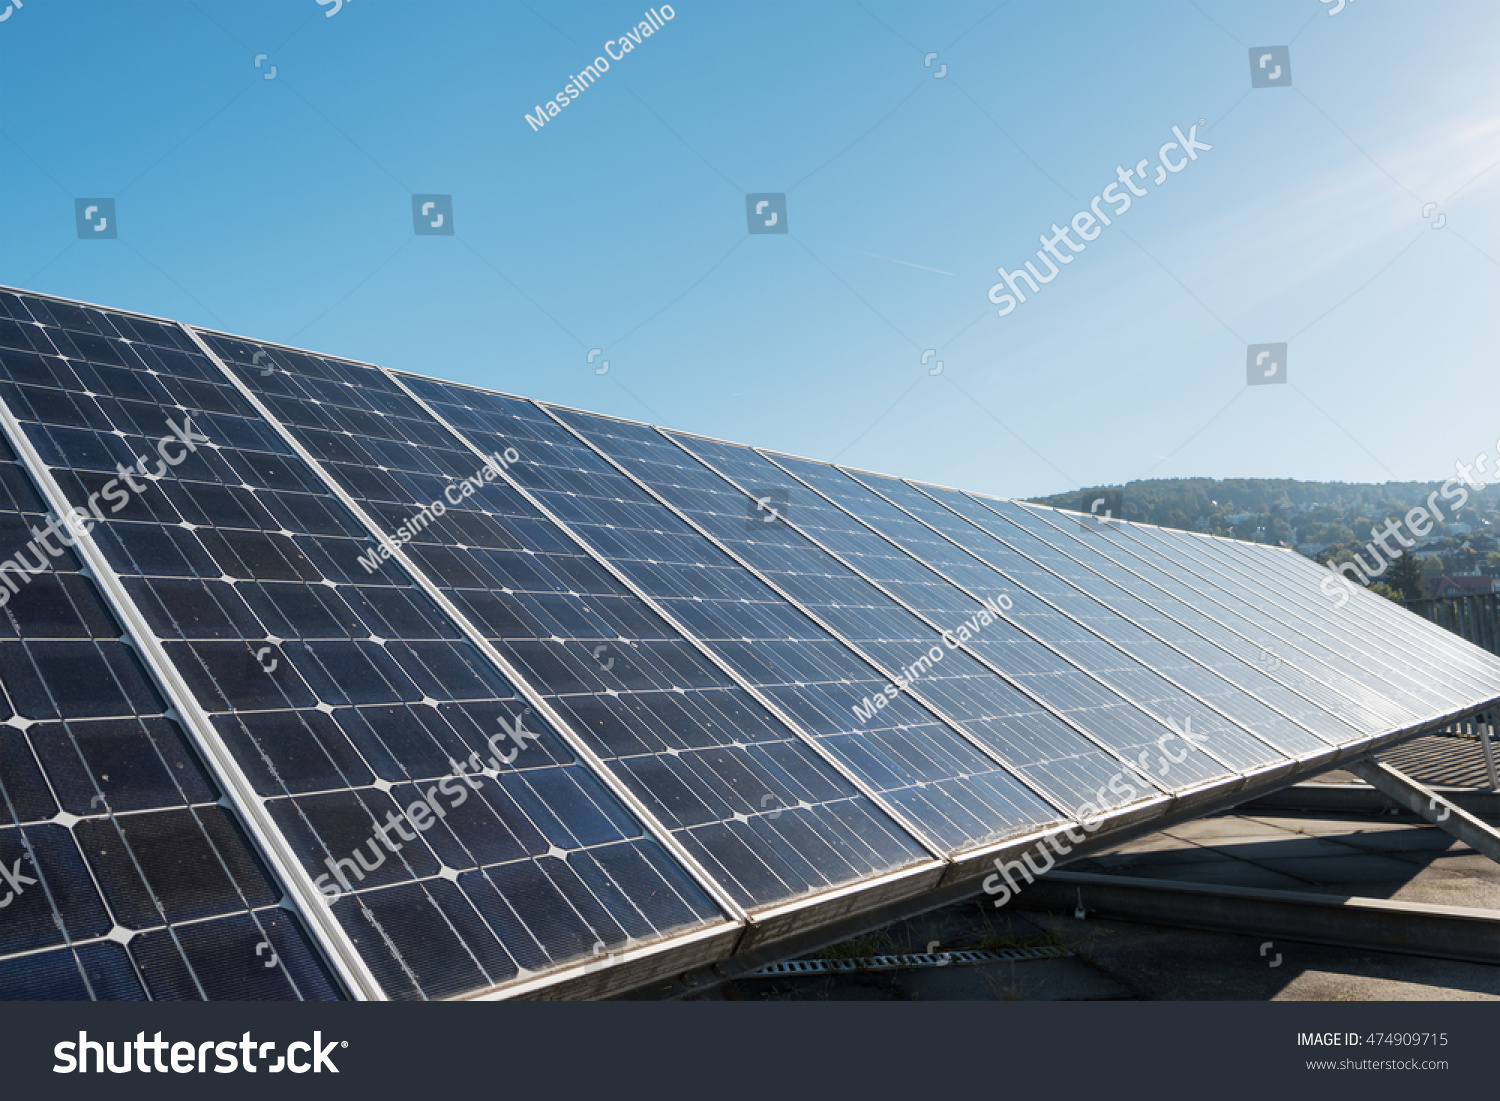 Solar Cell On Roof Top Against Blue Sunny Sky Stock Photo ...